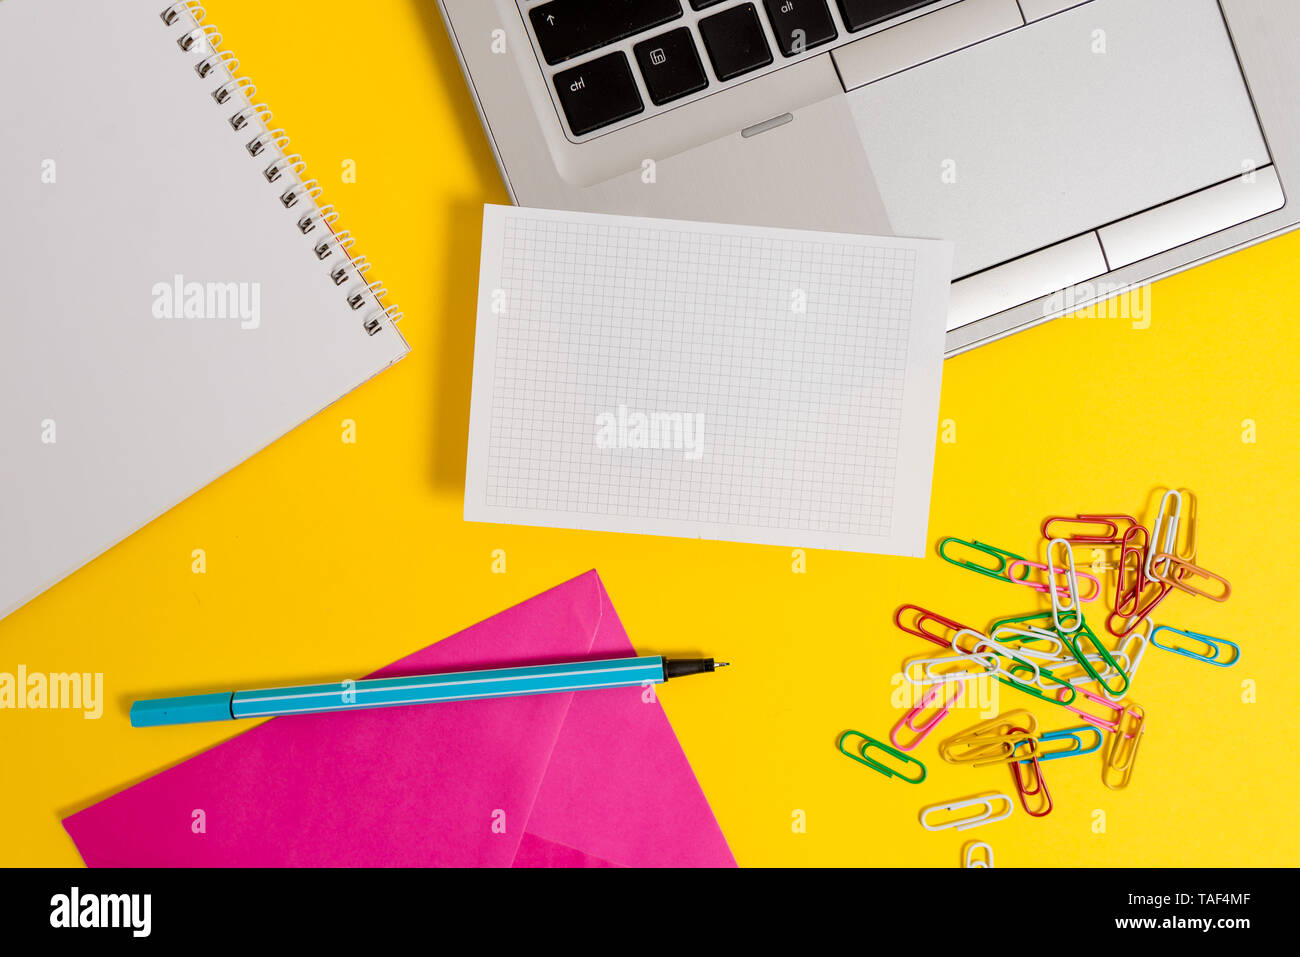 Laptop marker squared sheet spiral notebook clips envelope color background - Stock Image